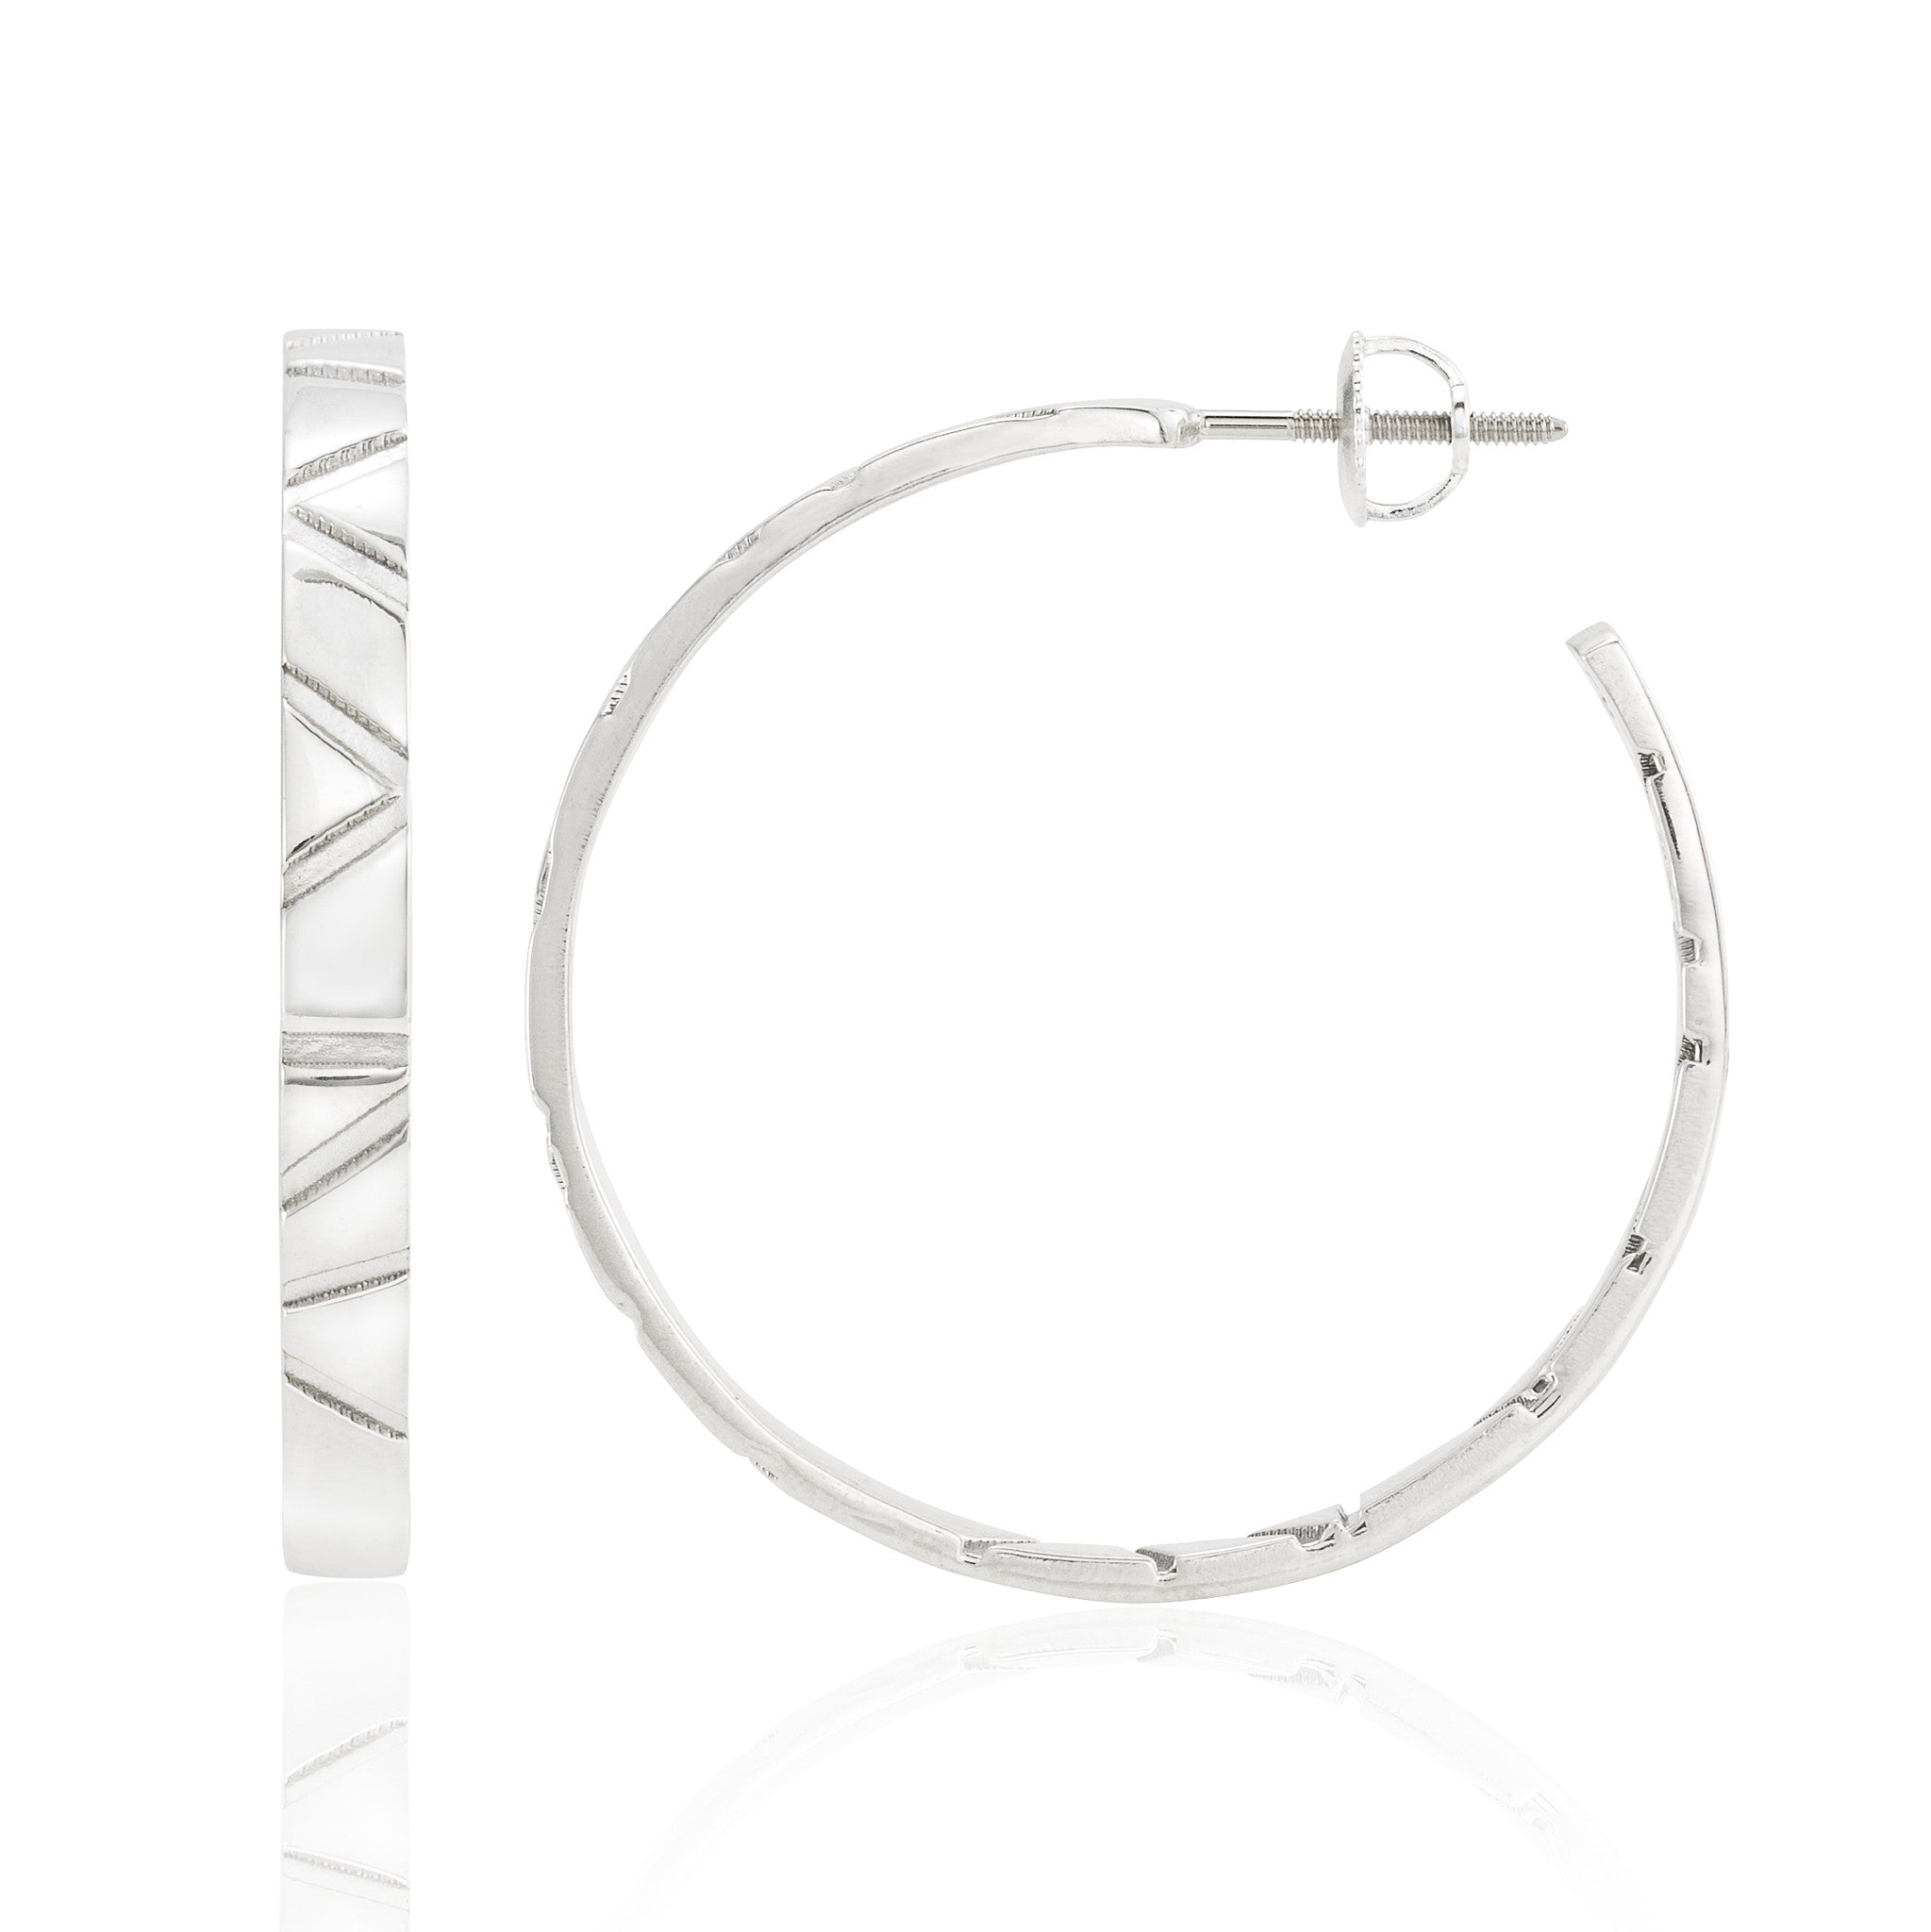 Skinny Hoop Earrings: Shiny